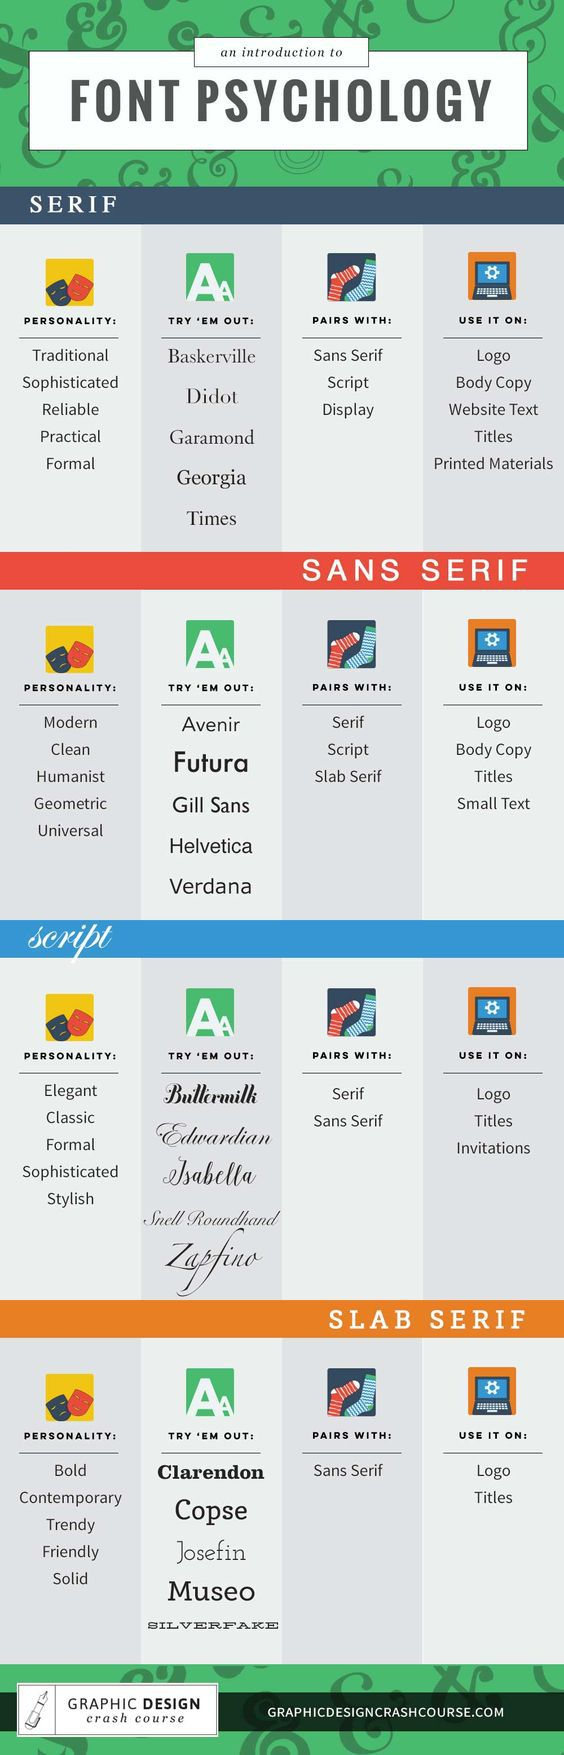 An Introduction to Font Psychology infographic